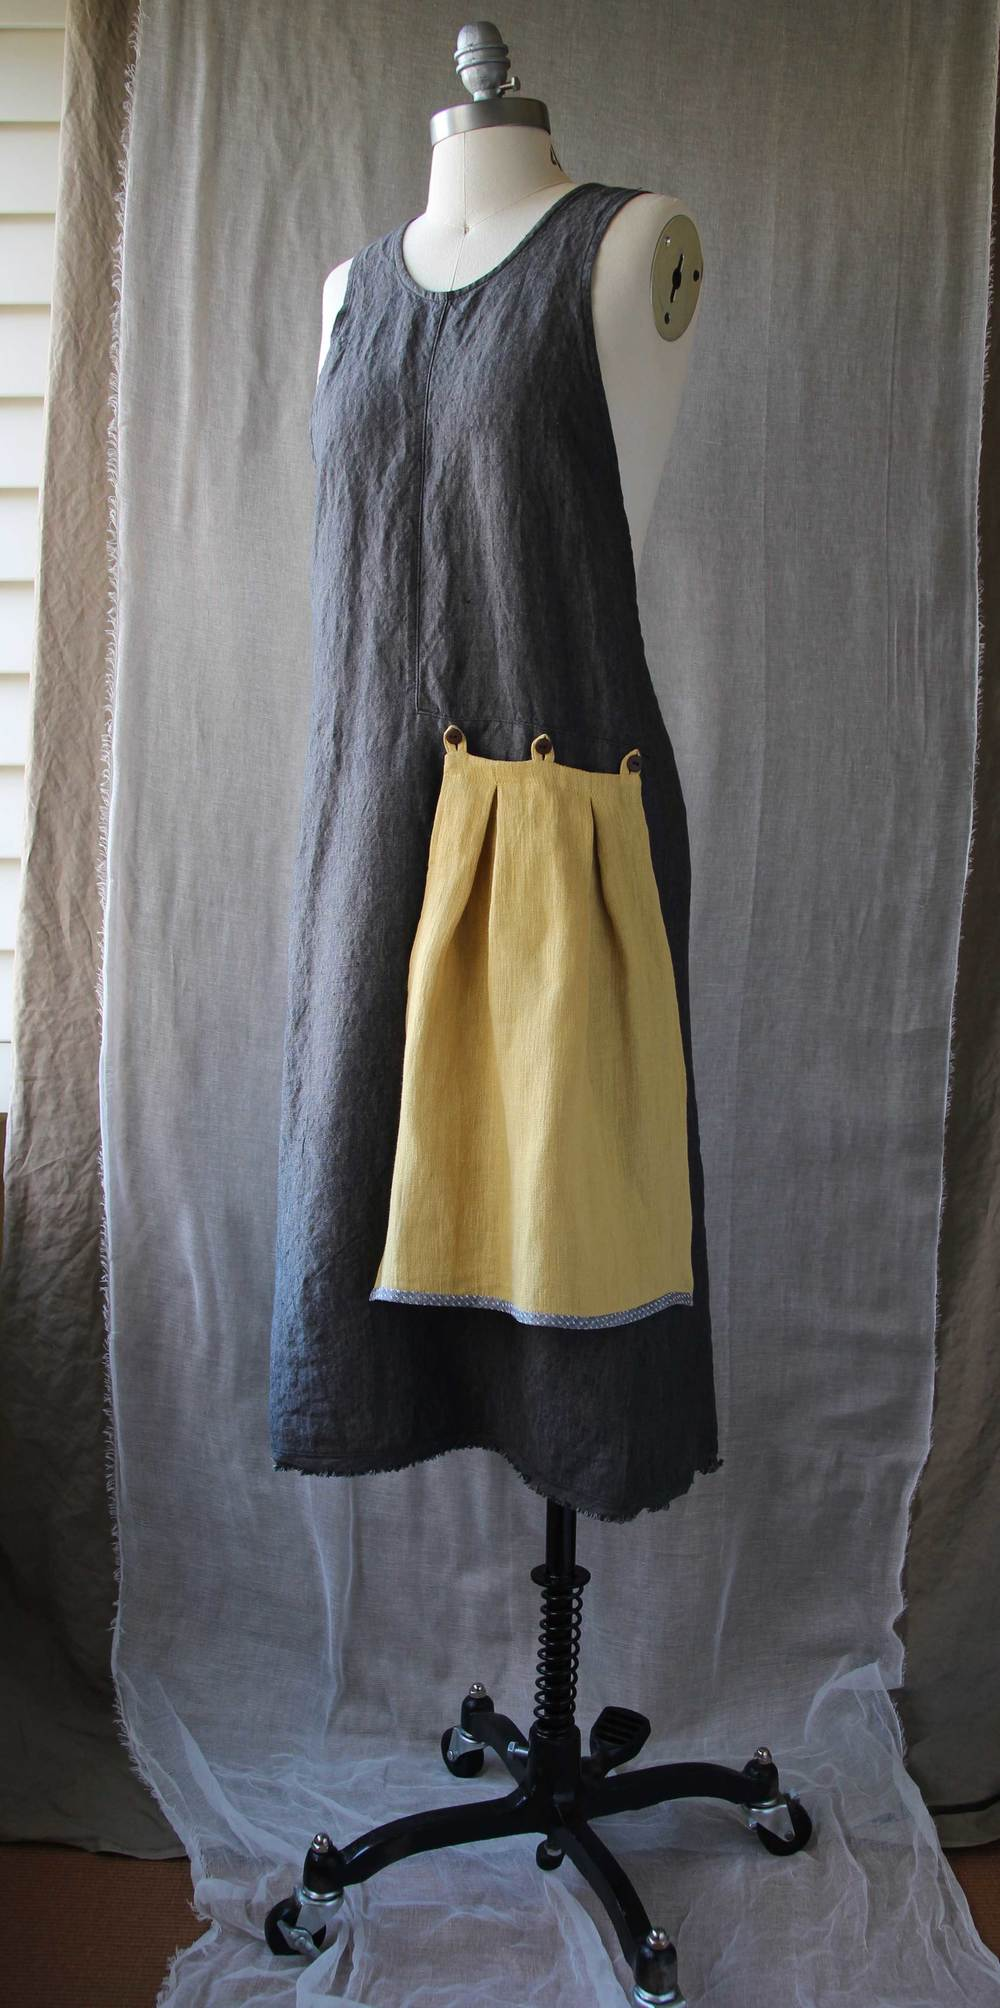 Charcoal Grace Apron with Goldenrod Flounce, designed and sewn in Portland, Oregon by Thread & Whisk